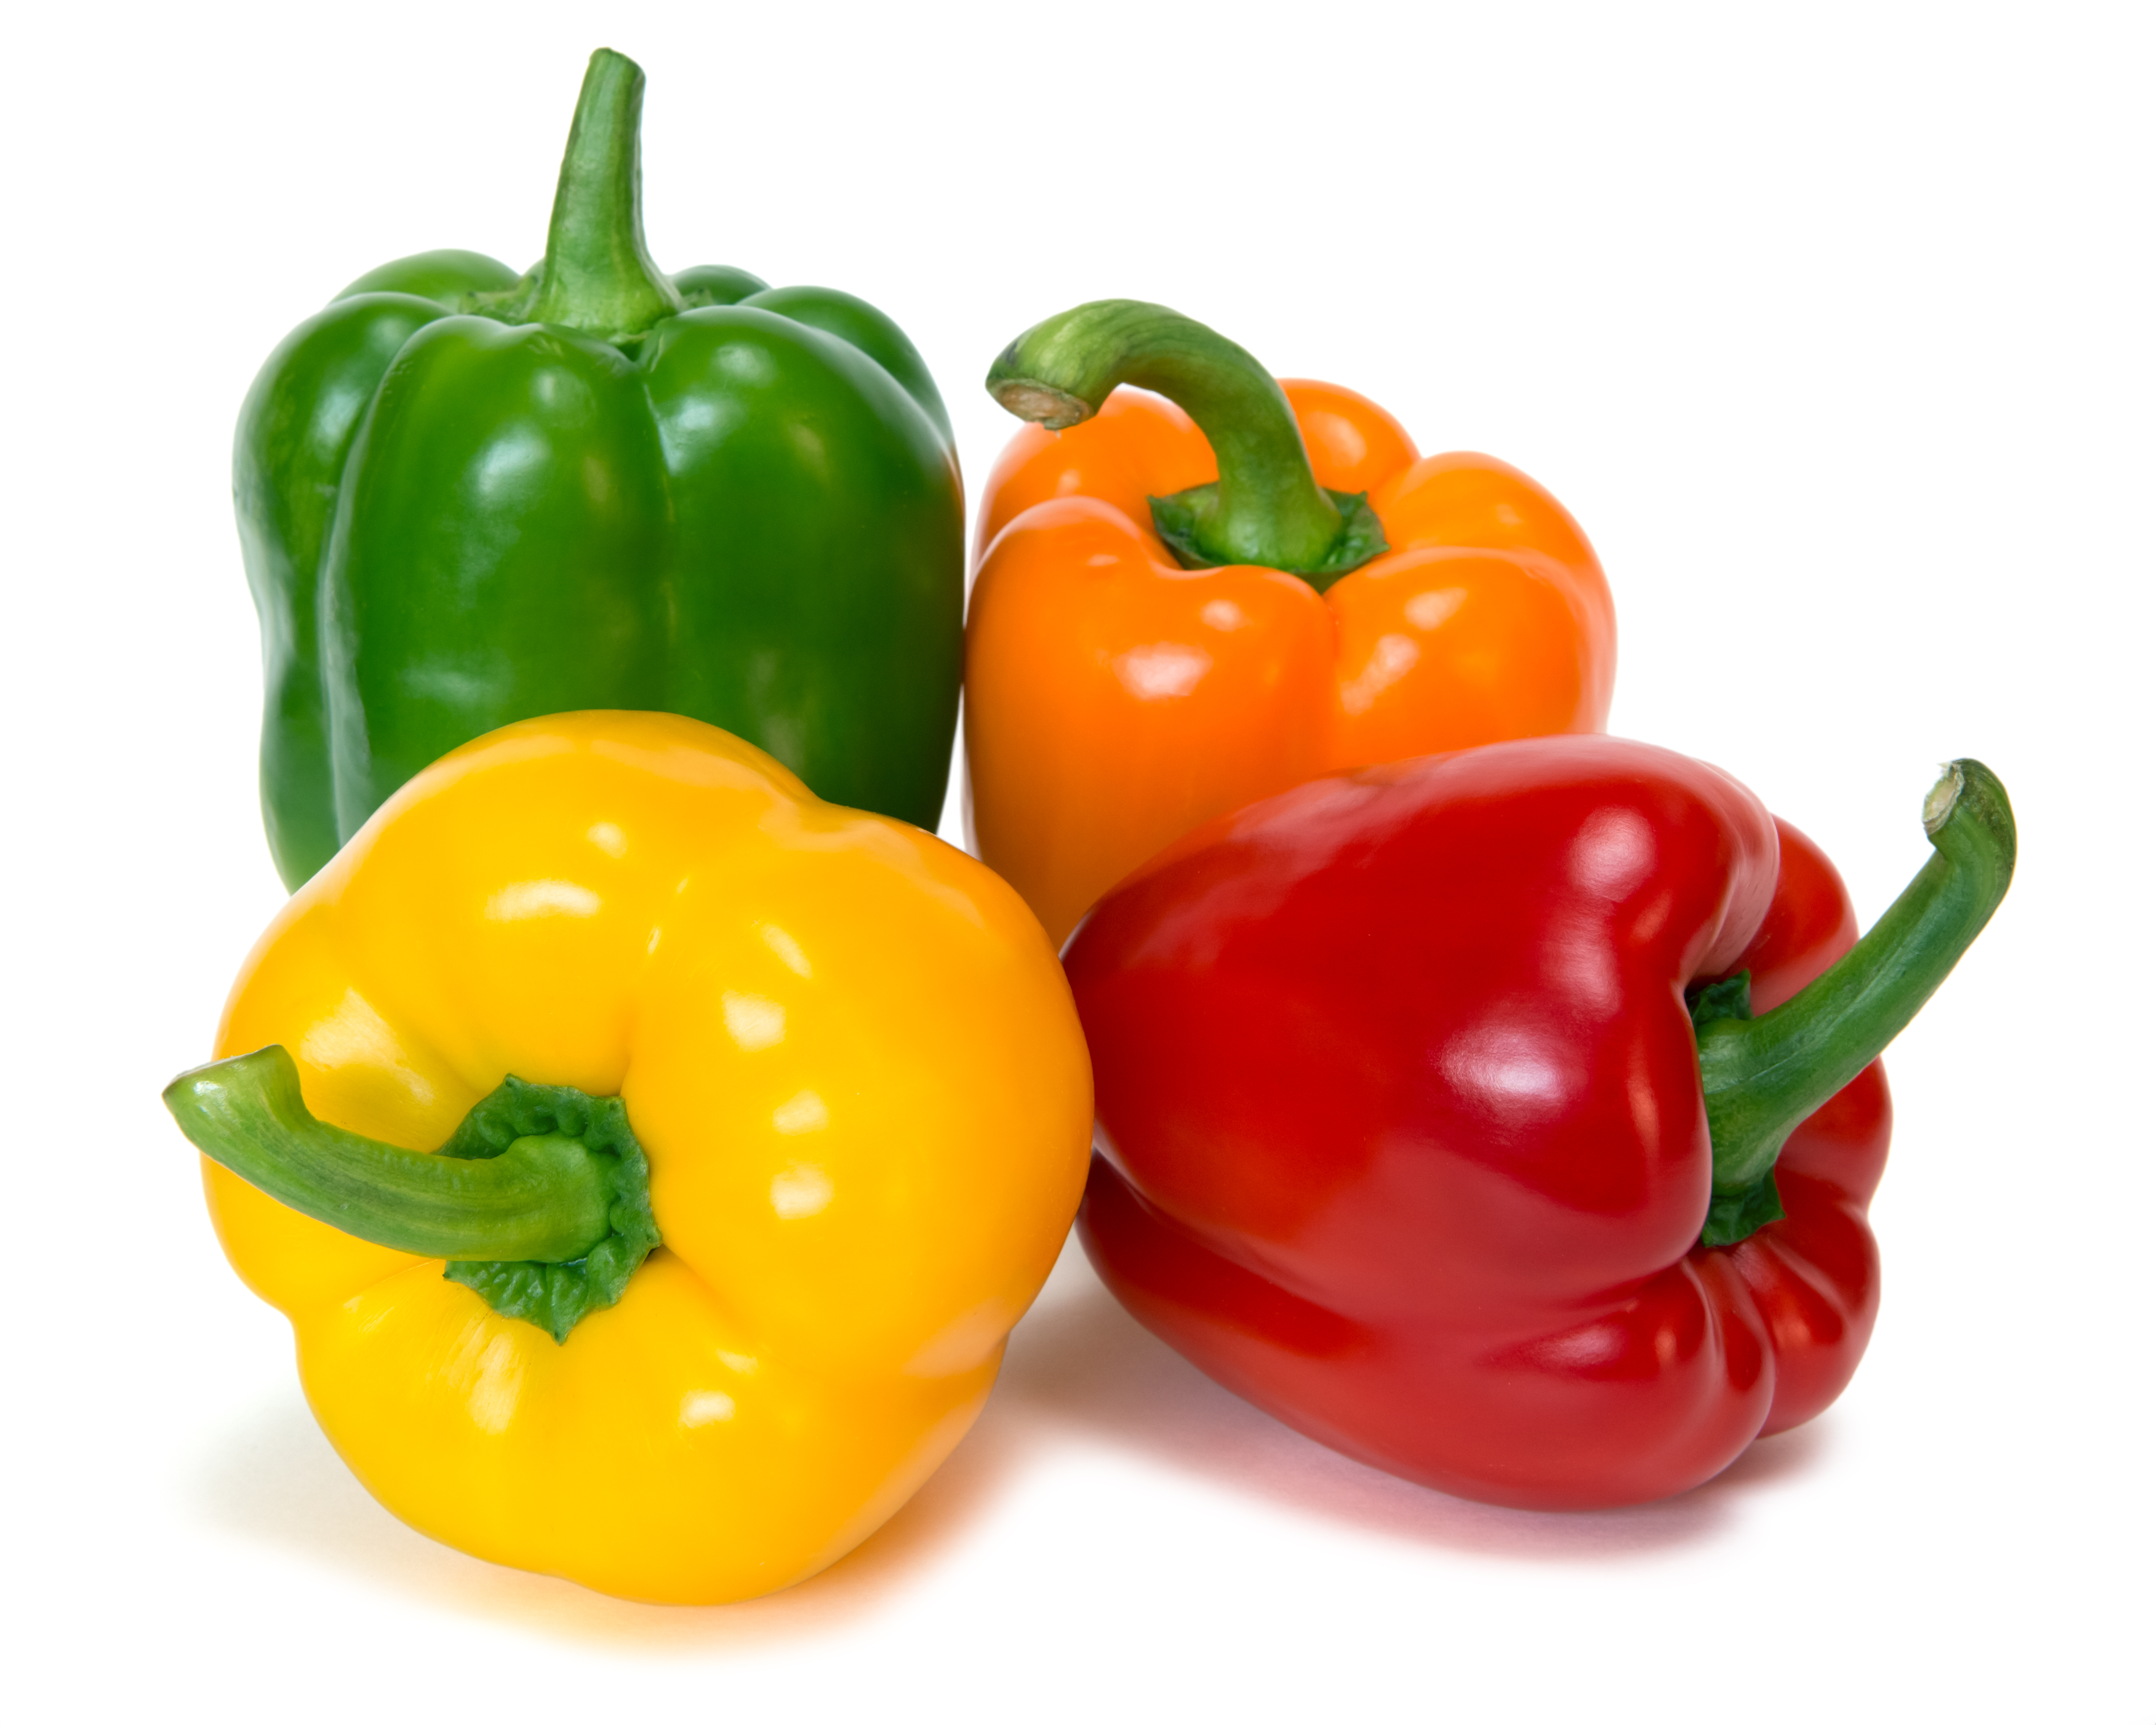 Crystal Valley Bell Peppers - Crystal Valley